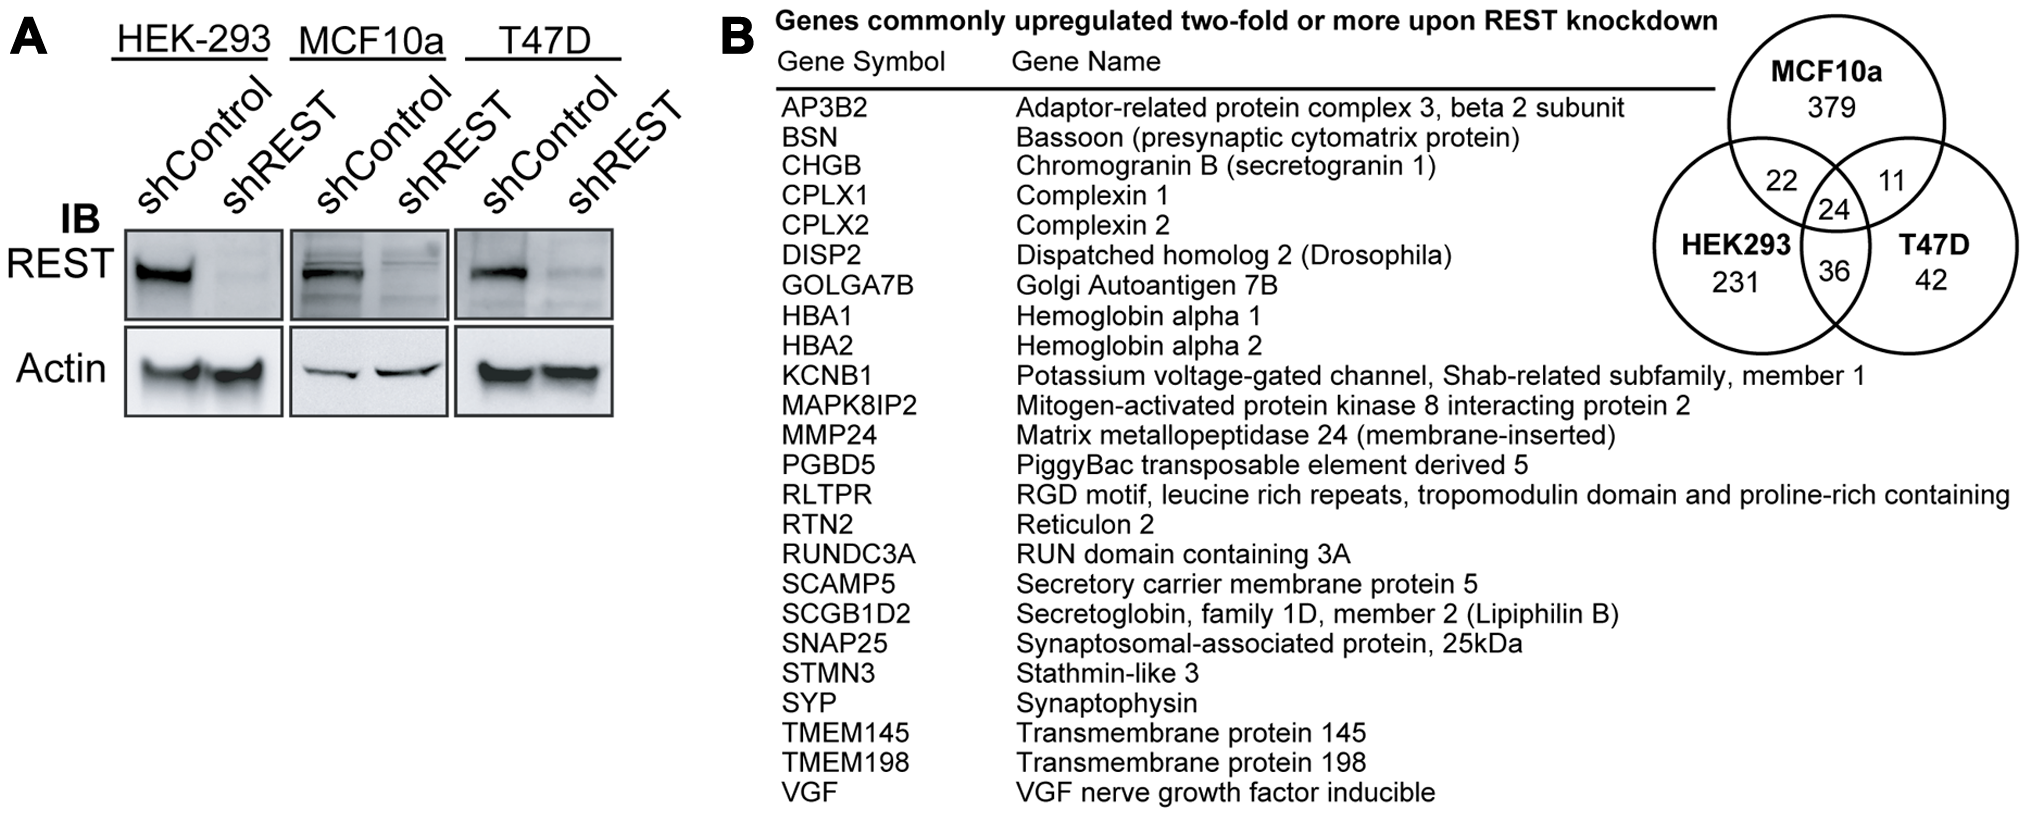 Generation of a 24-gene signature for loss of REST.